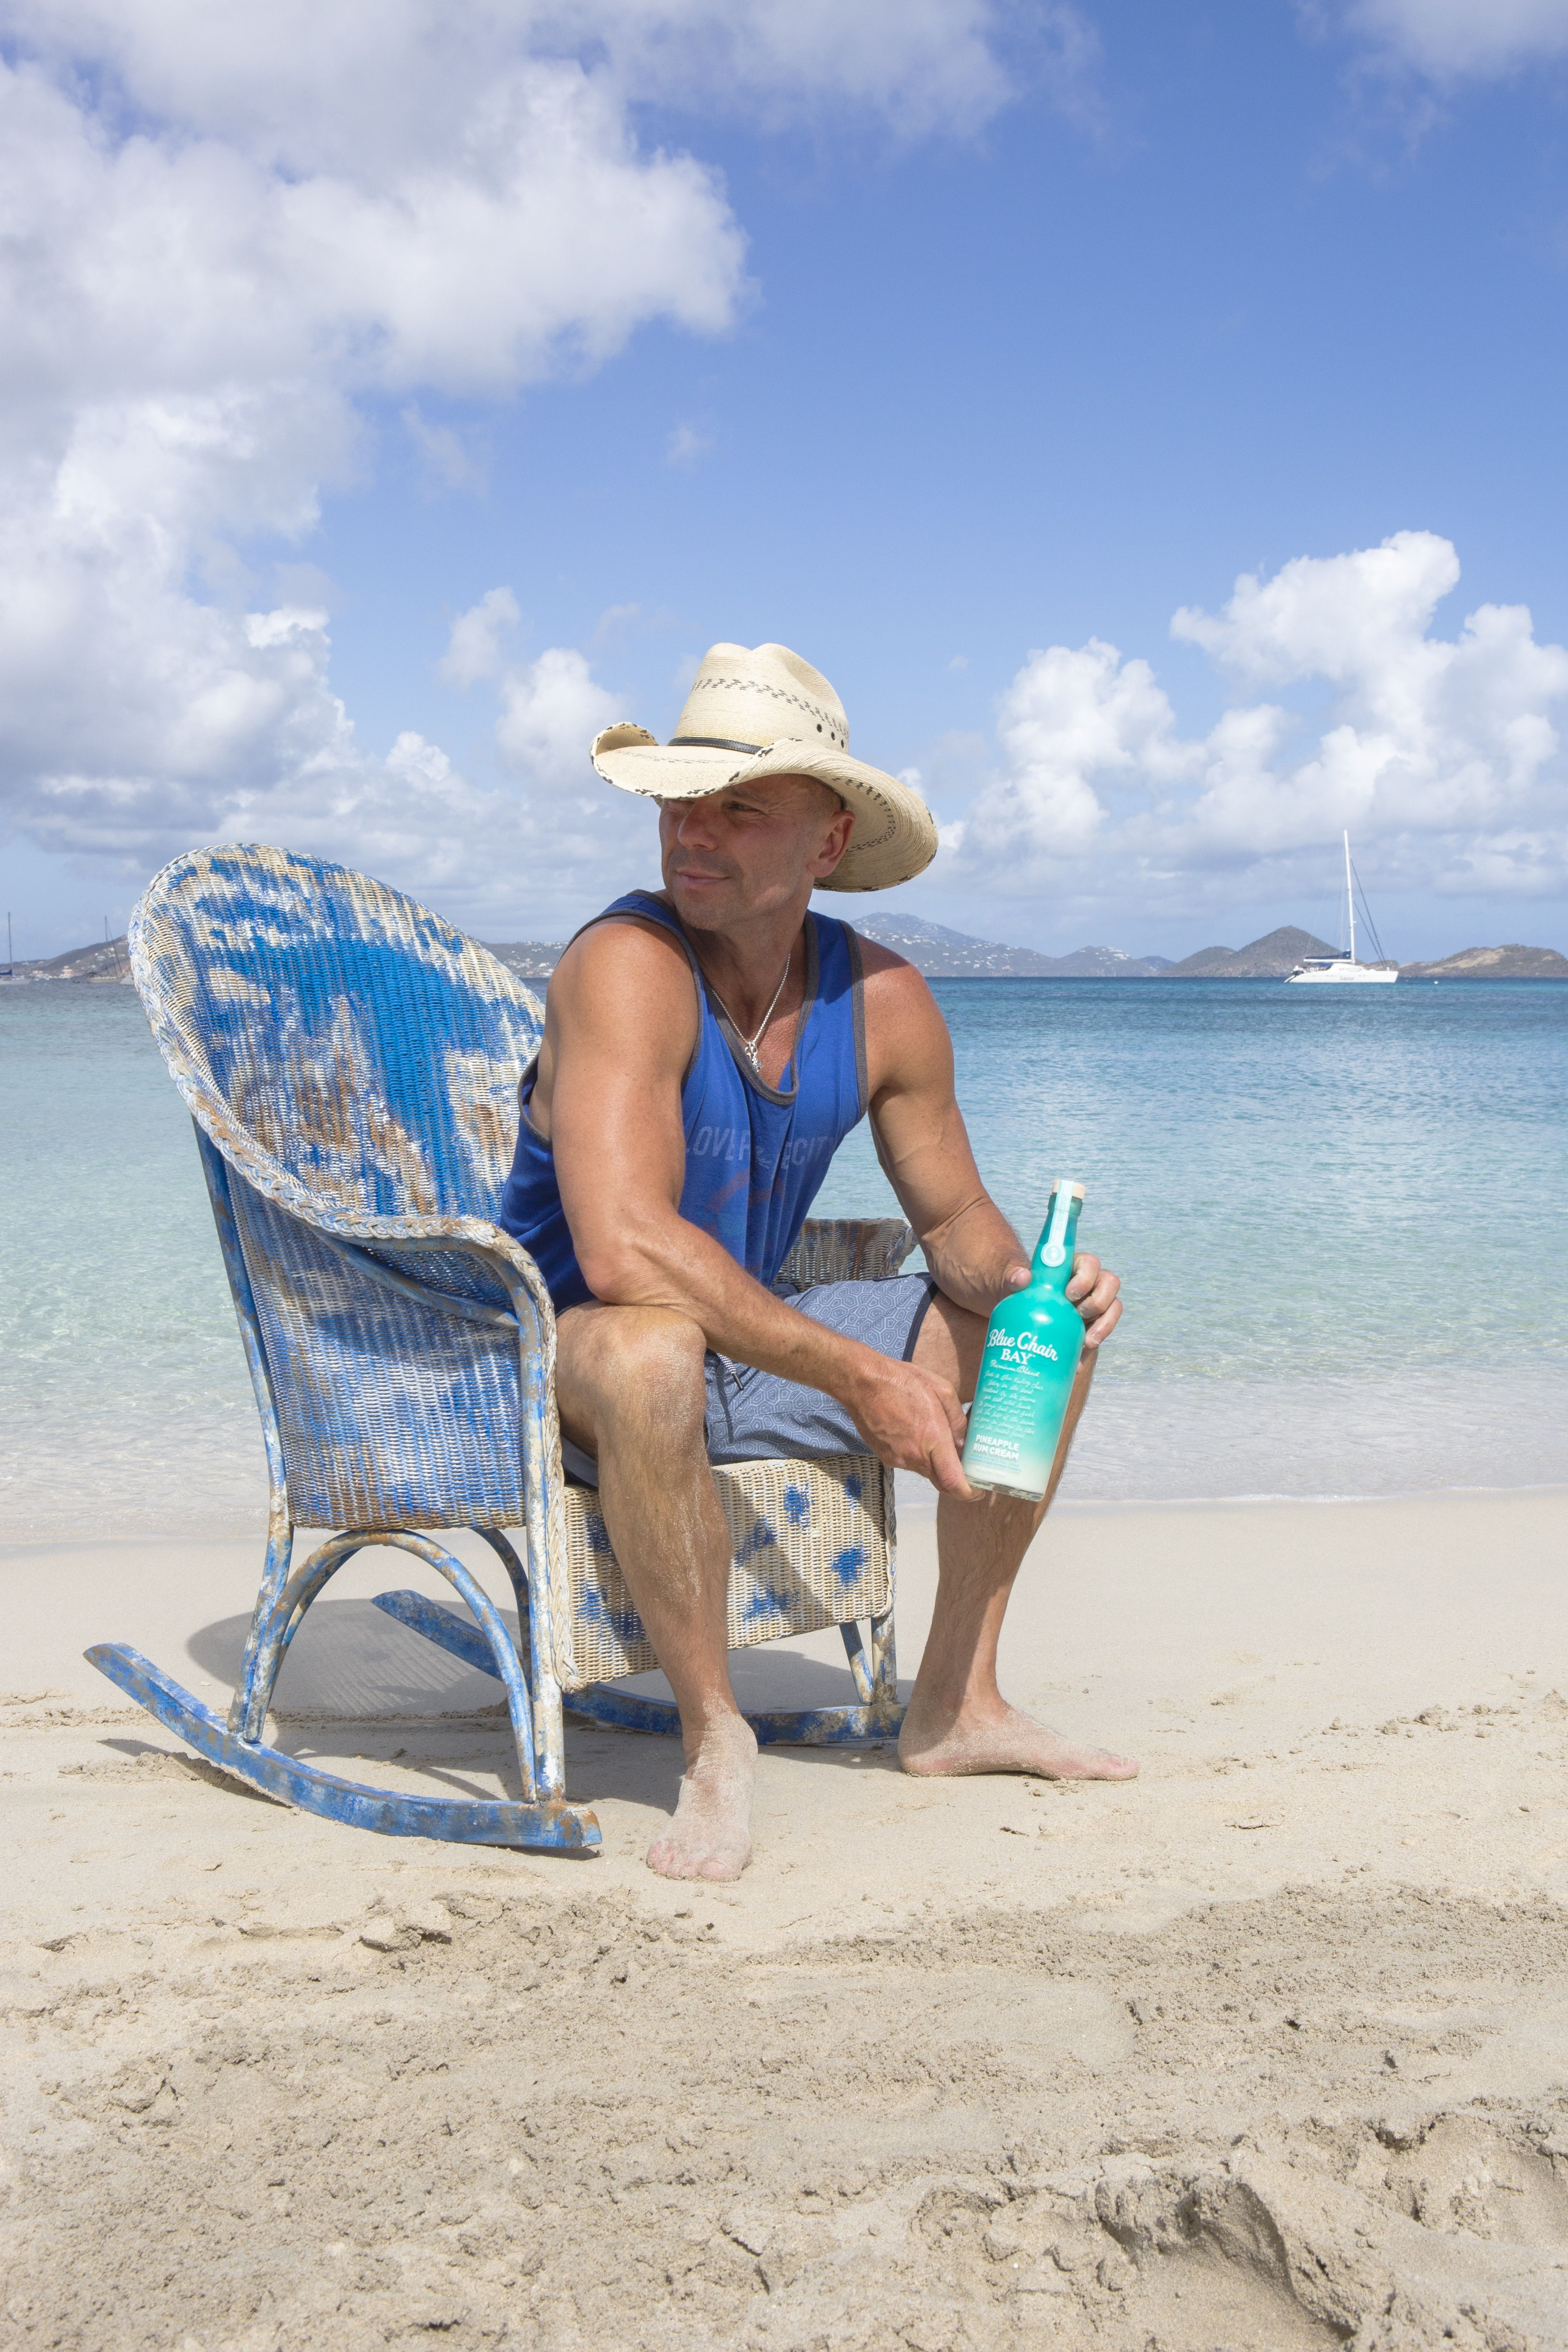 Kenny Chesney Blue Chair Bay Hats Eames Lounge Knock Off Introducing Rum S Newest Flavor Pineapple Cream